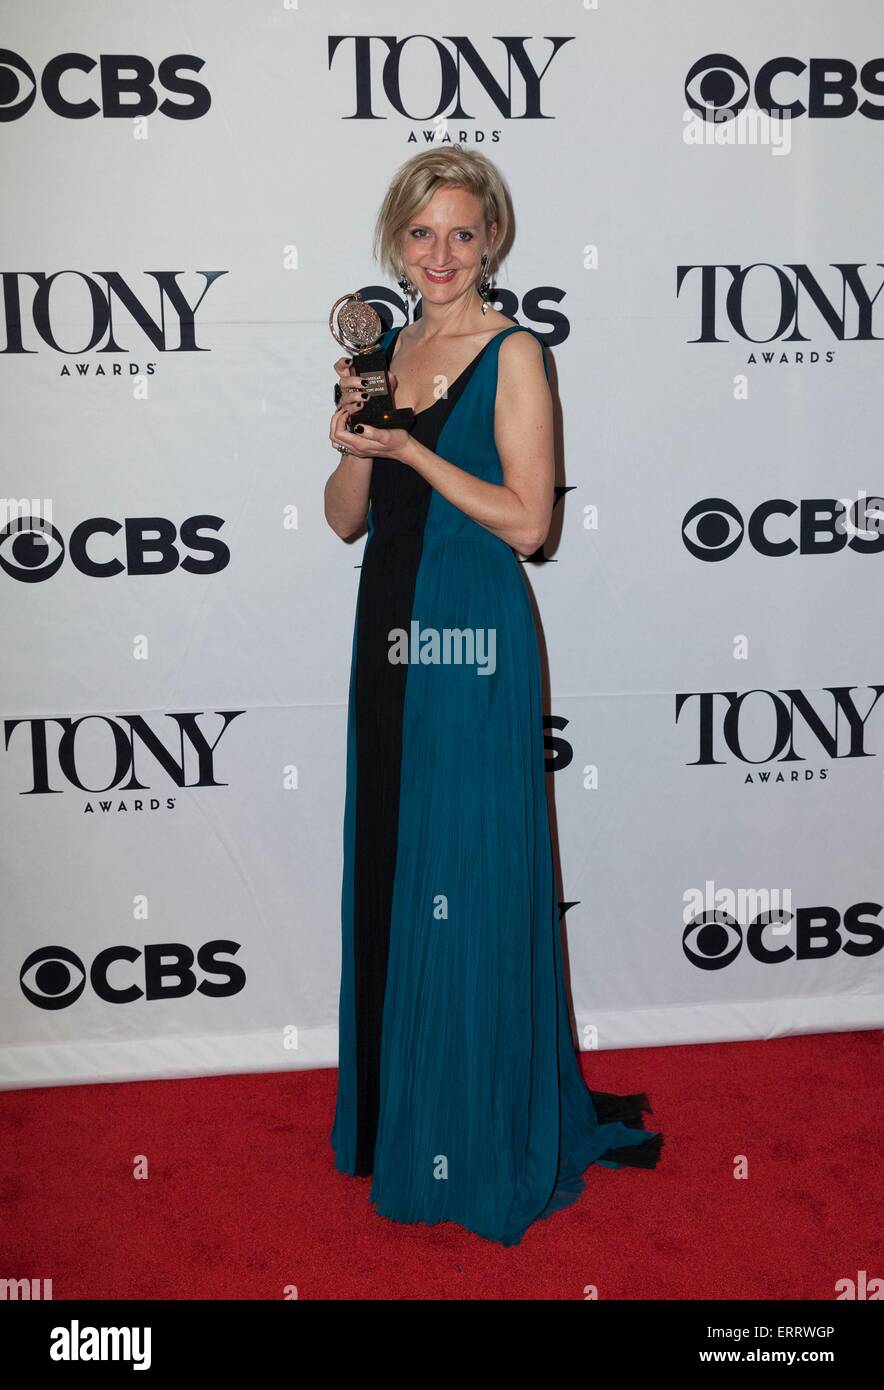 New York, NY, USA. 7th June, 2015. Marianne Elliott in the press room for The 69th Annual Tony Awards 2015 - Press - Stock Image